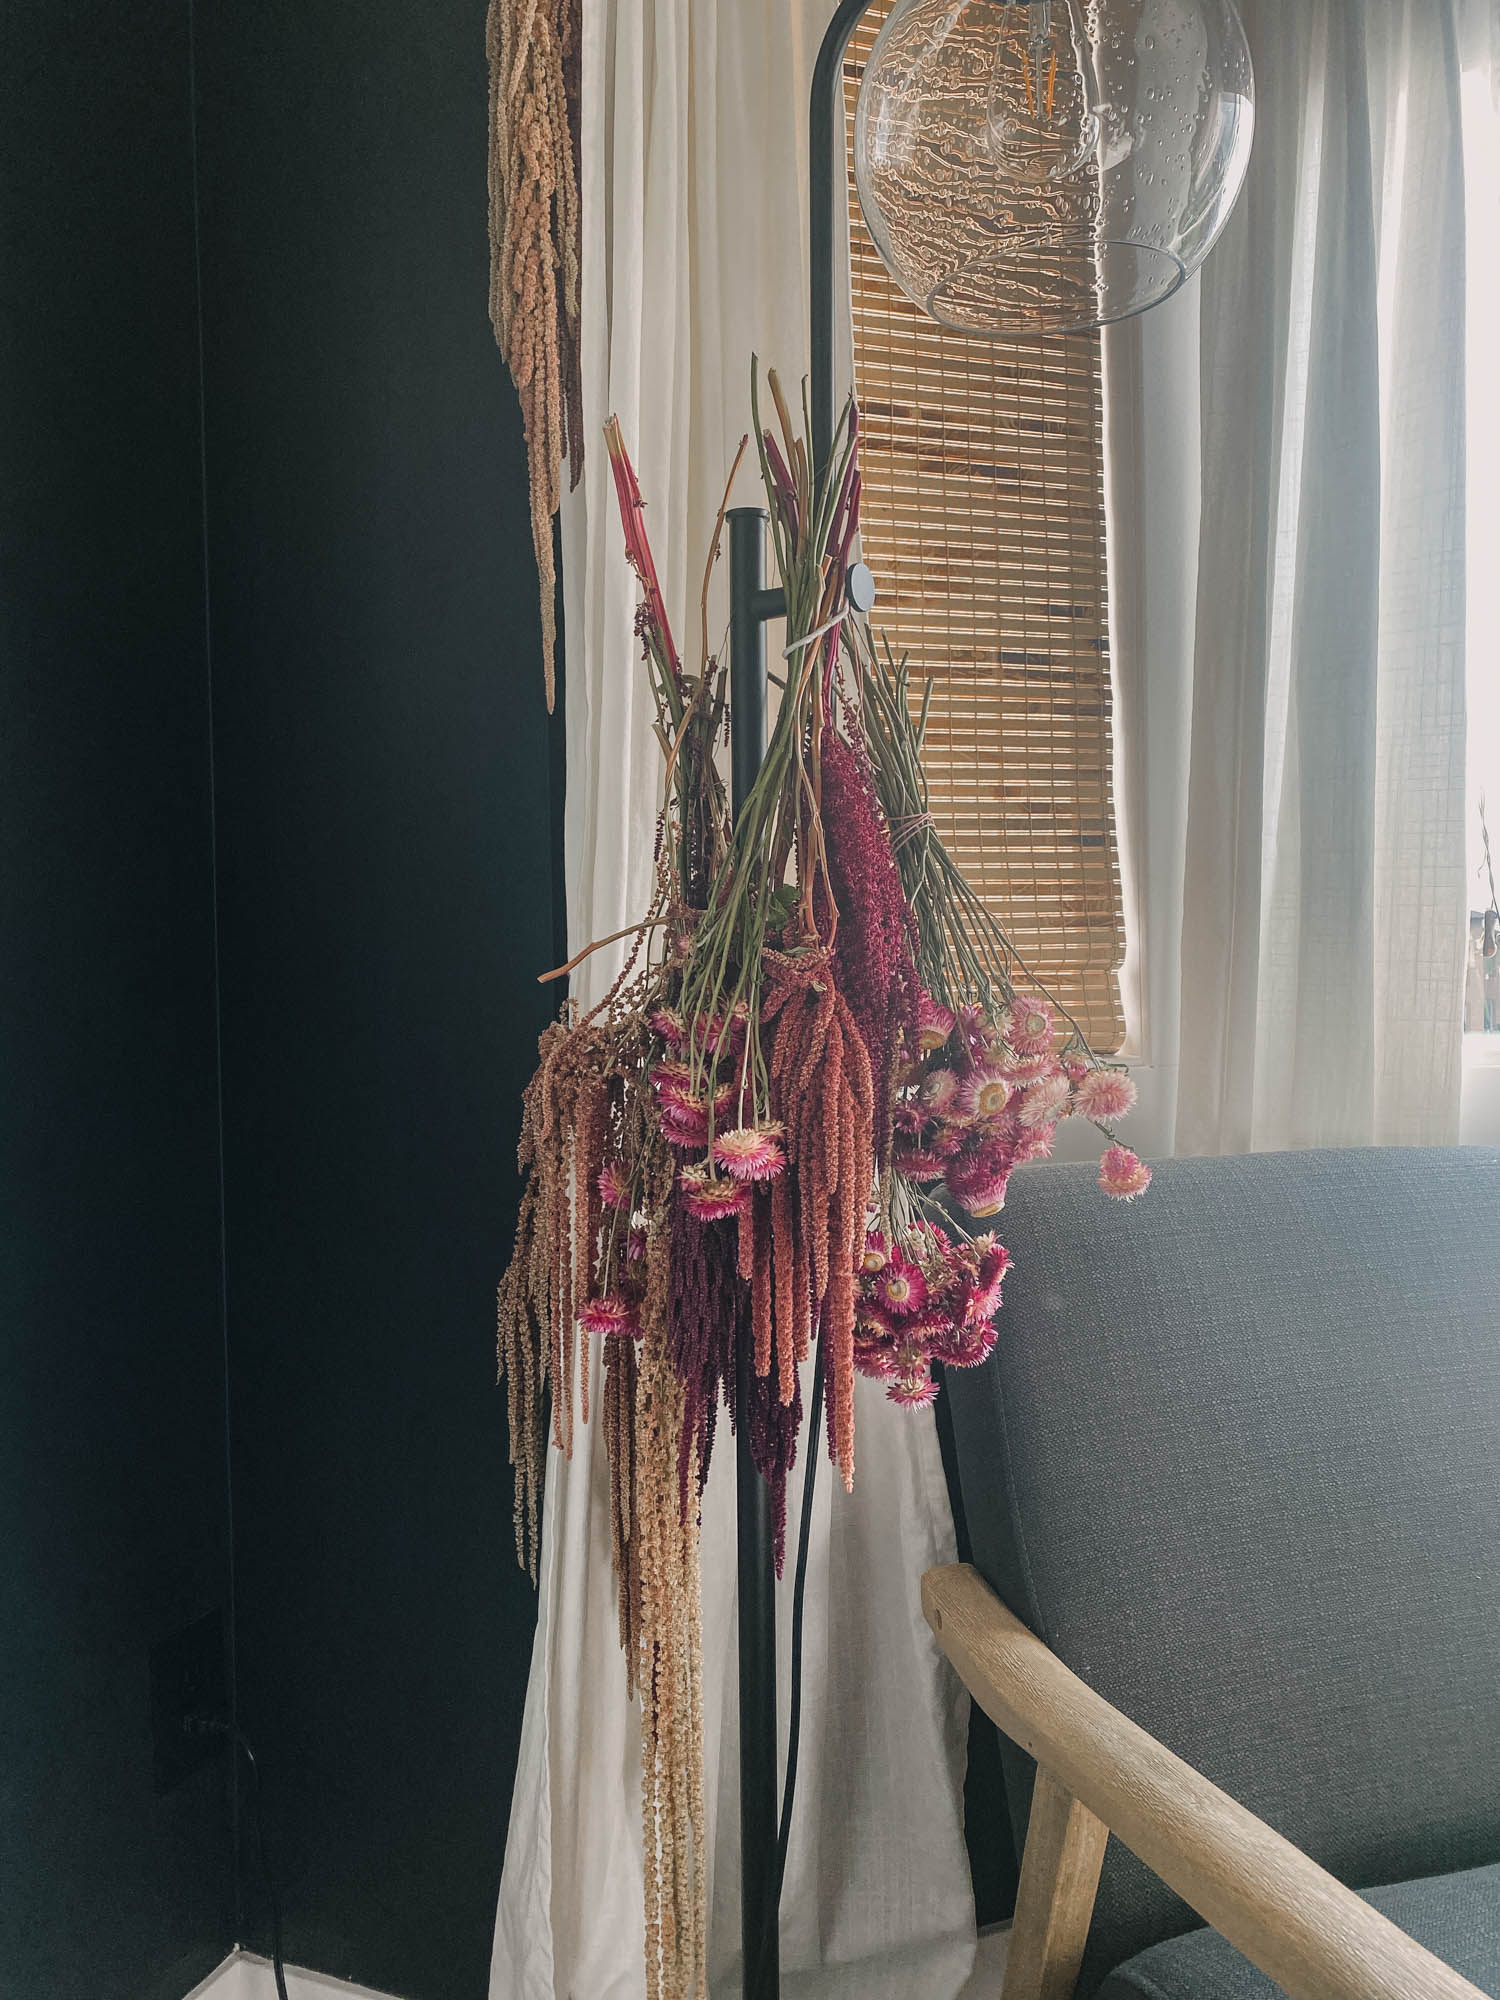 hanging florals to dry them